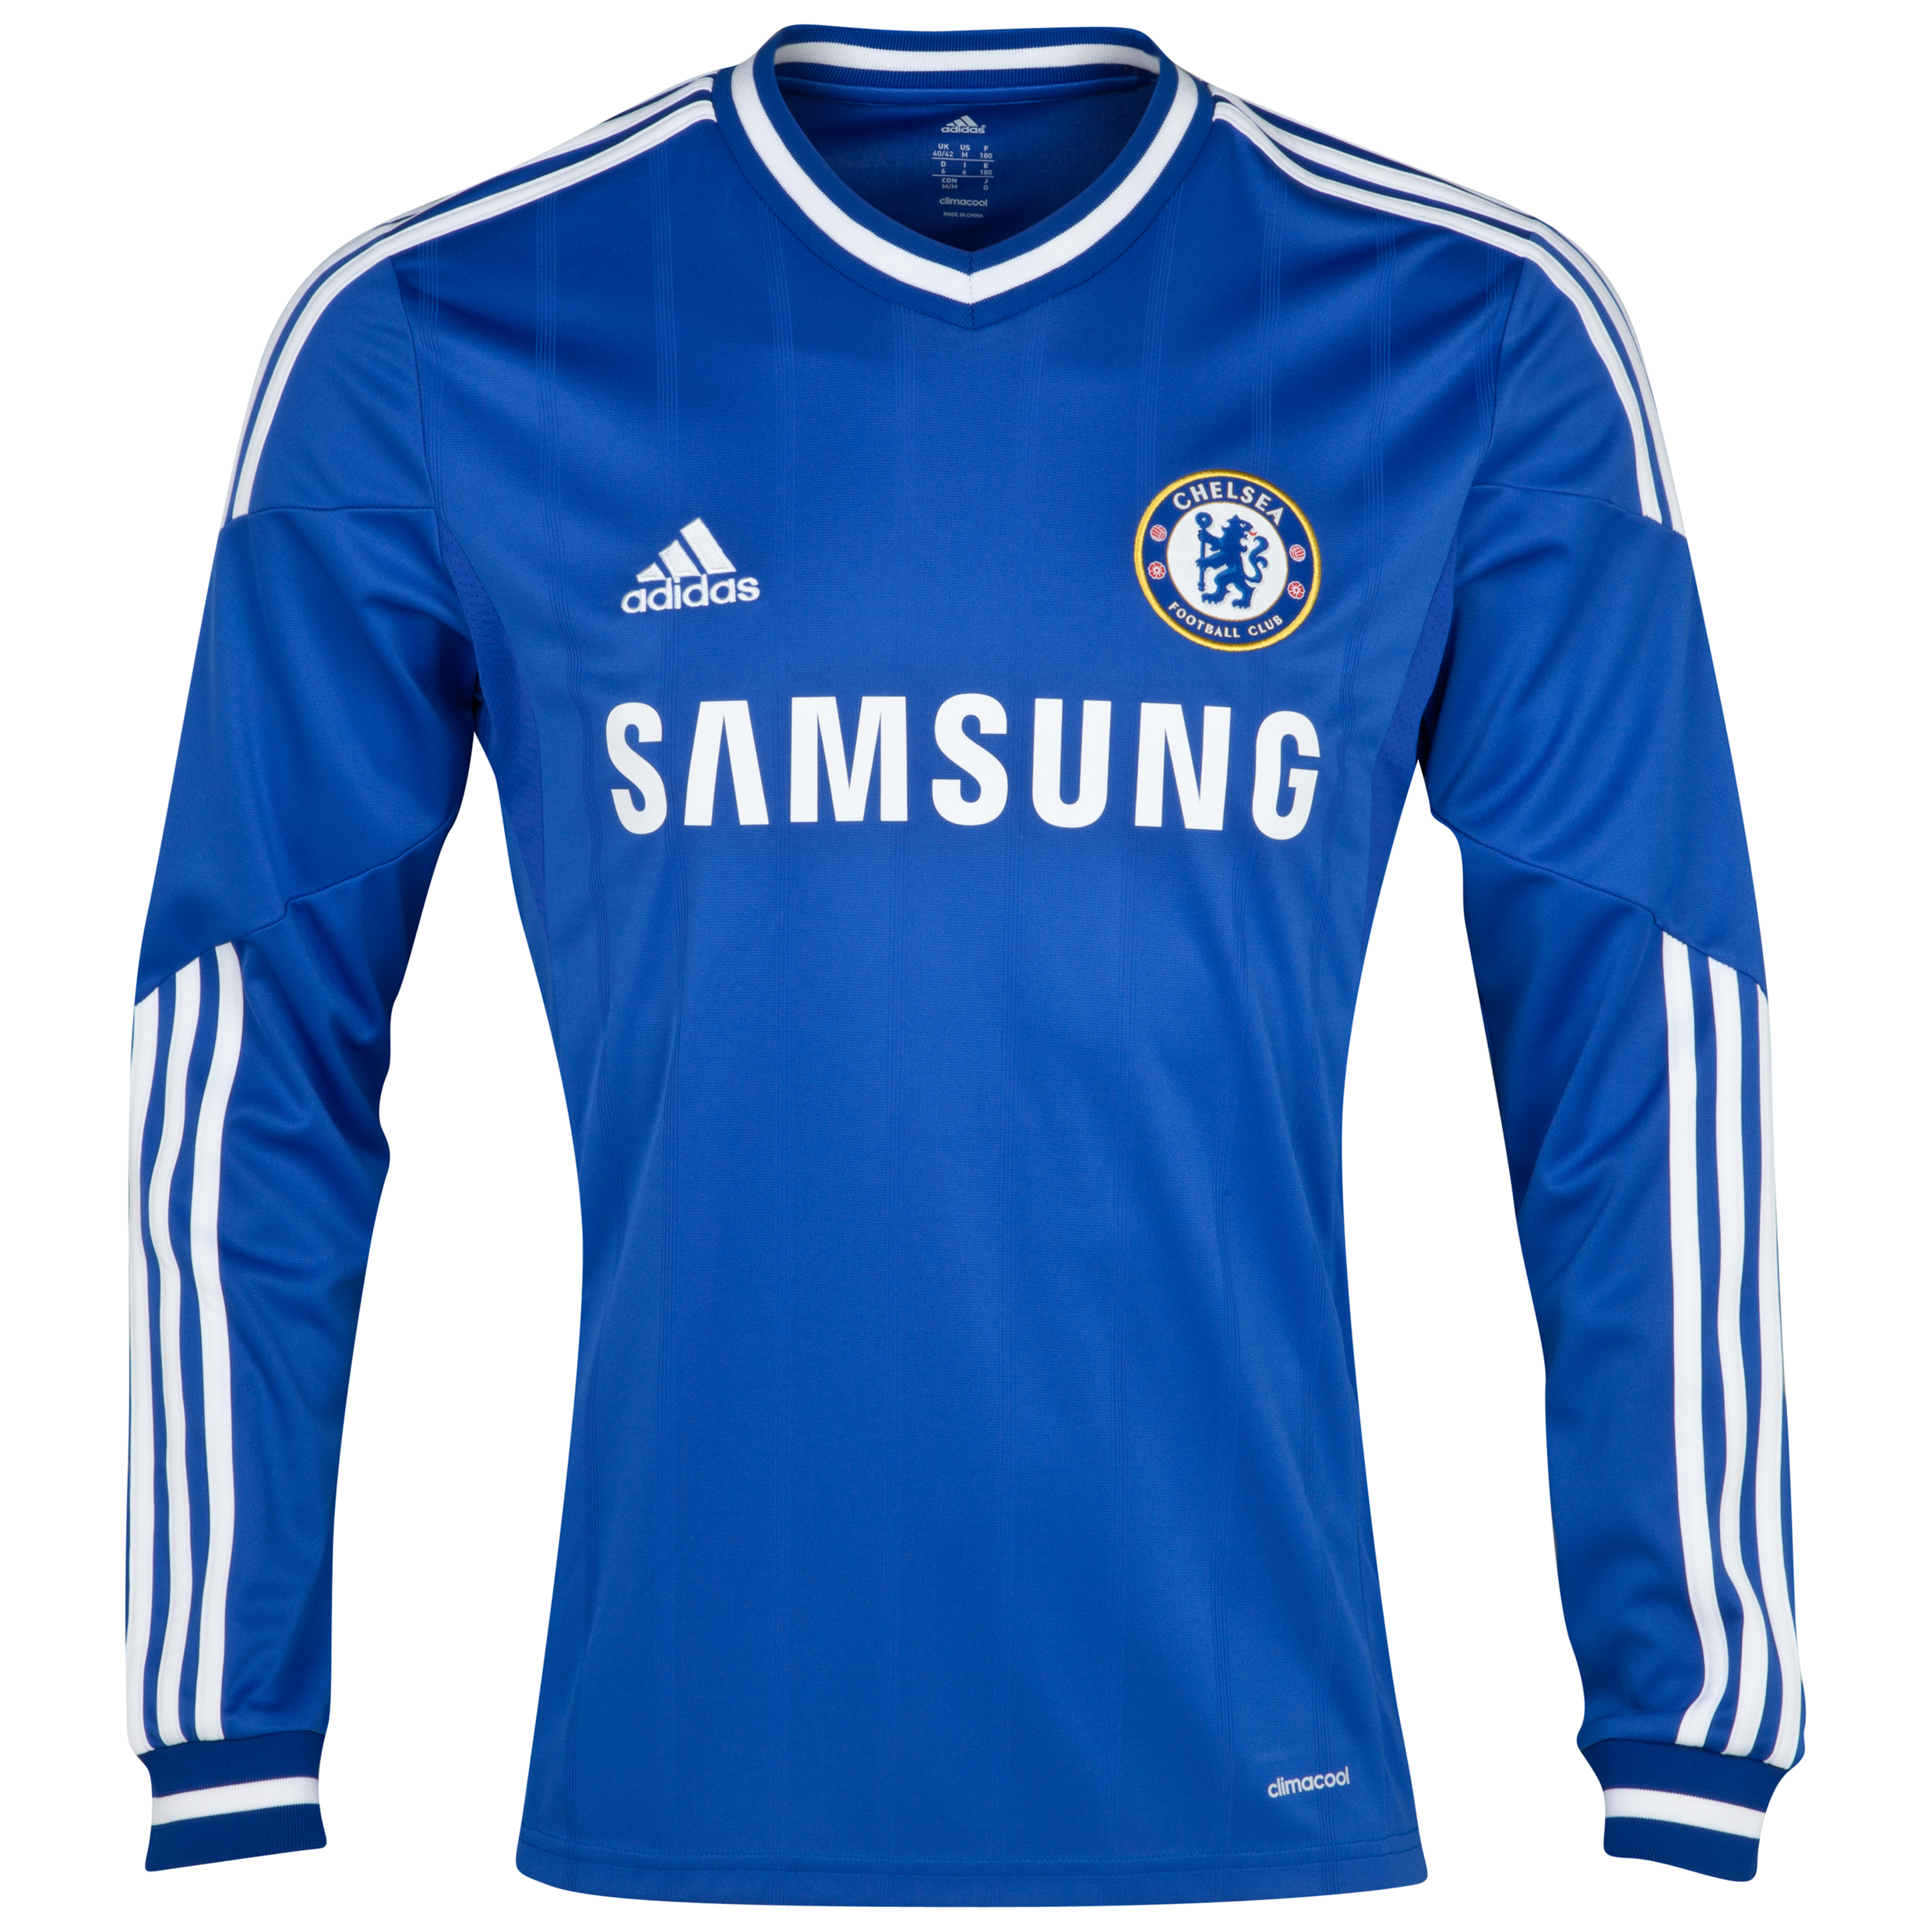 Buy Chelsea Home Kit 2013/14 Long Sleeve